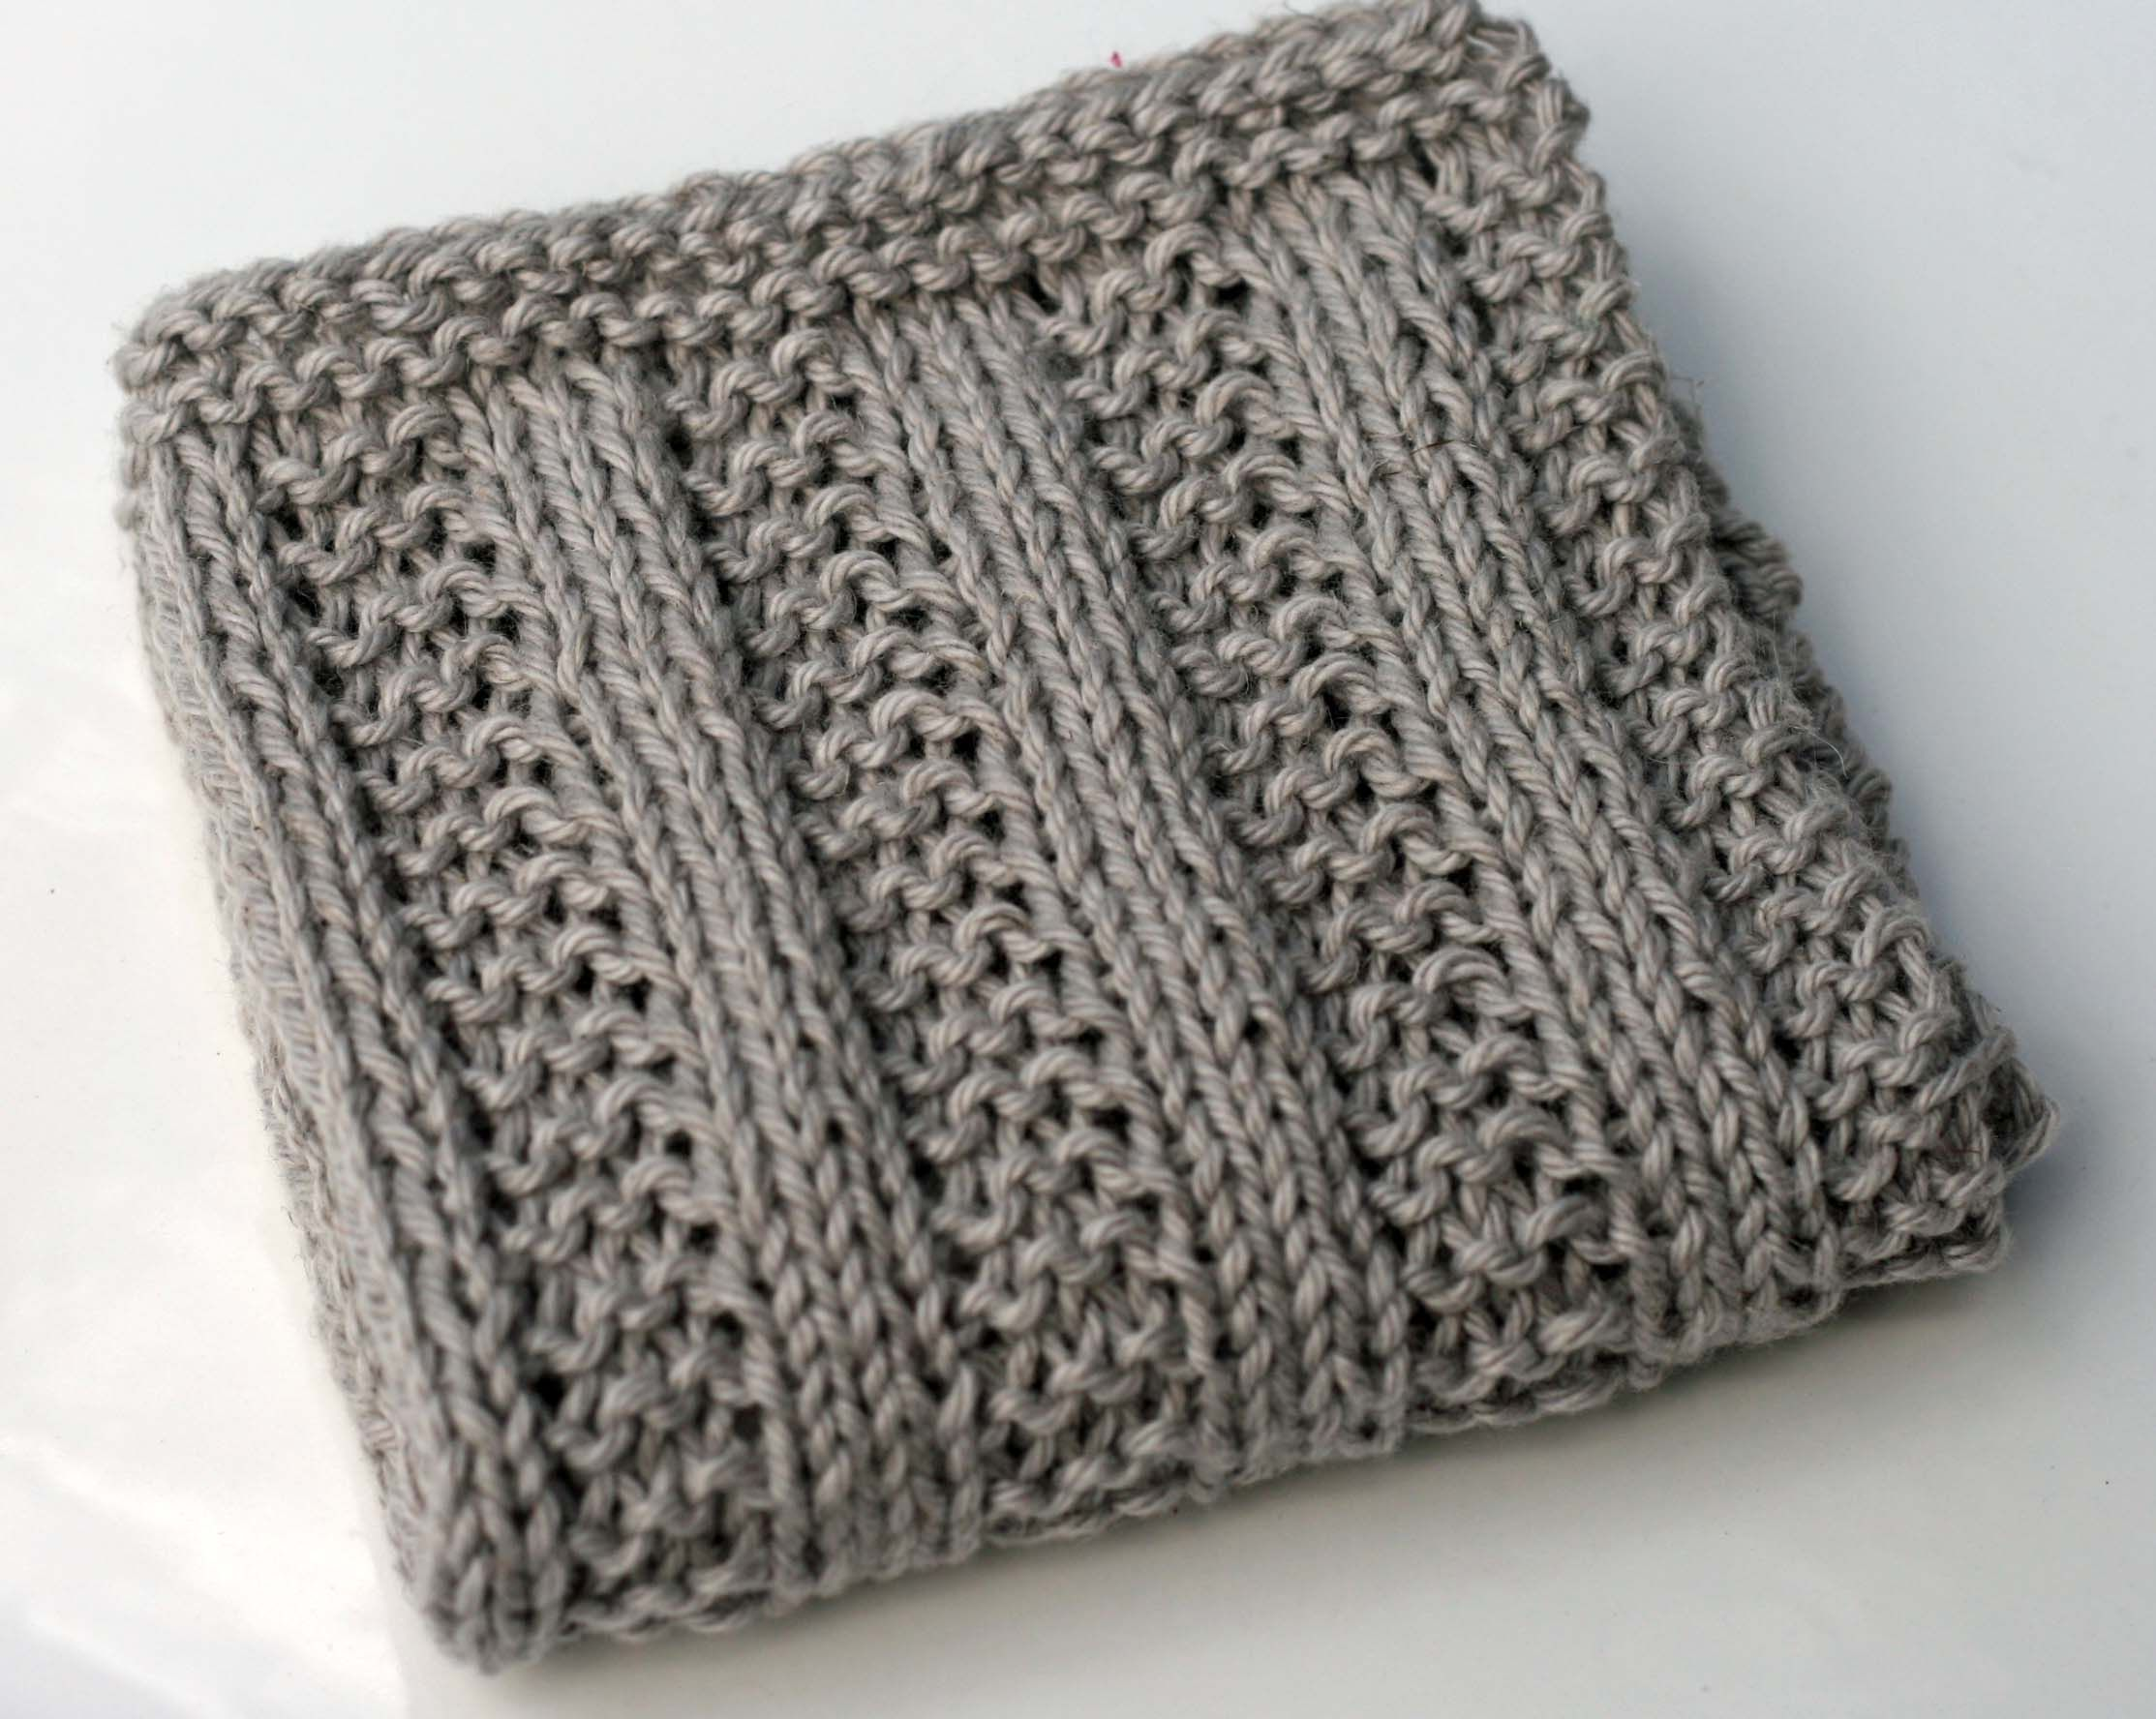 Kitchen Dishcloths # 4 - Knitting Patterns and Crochet Patterns from KnitPick...